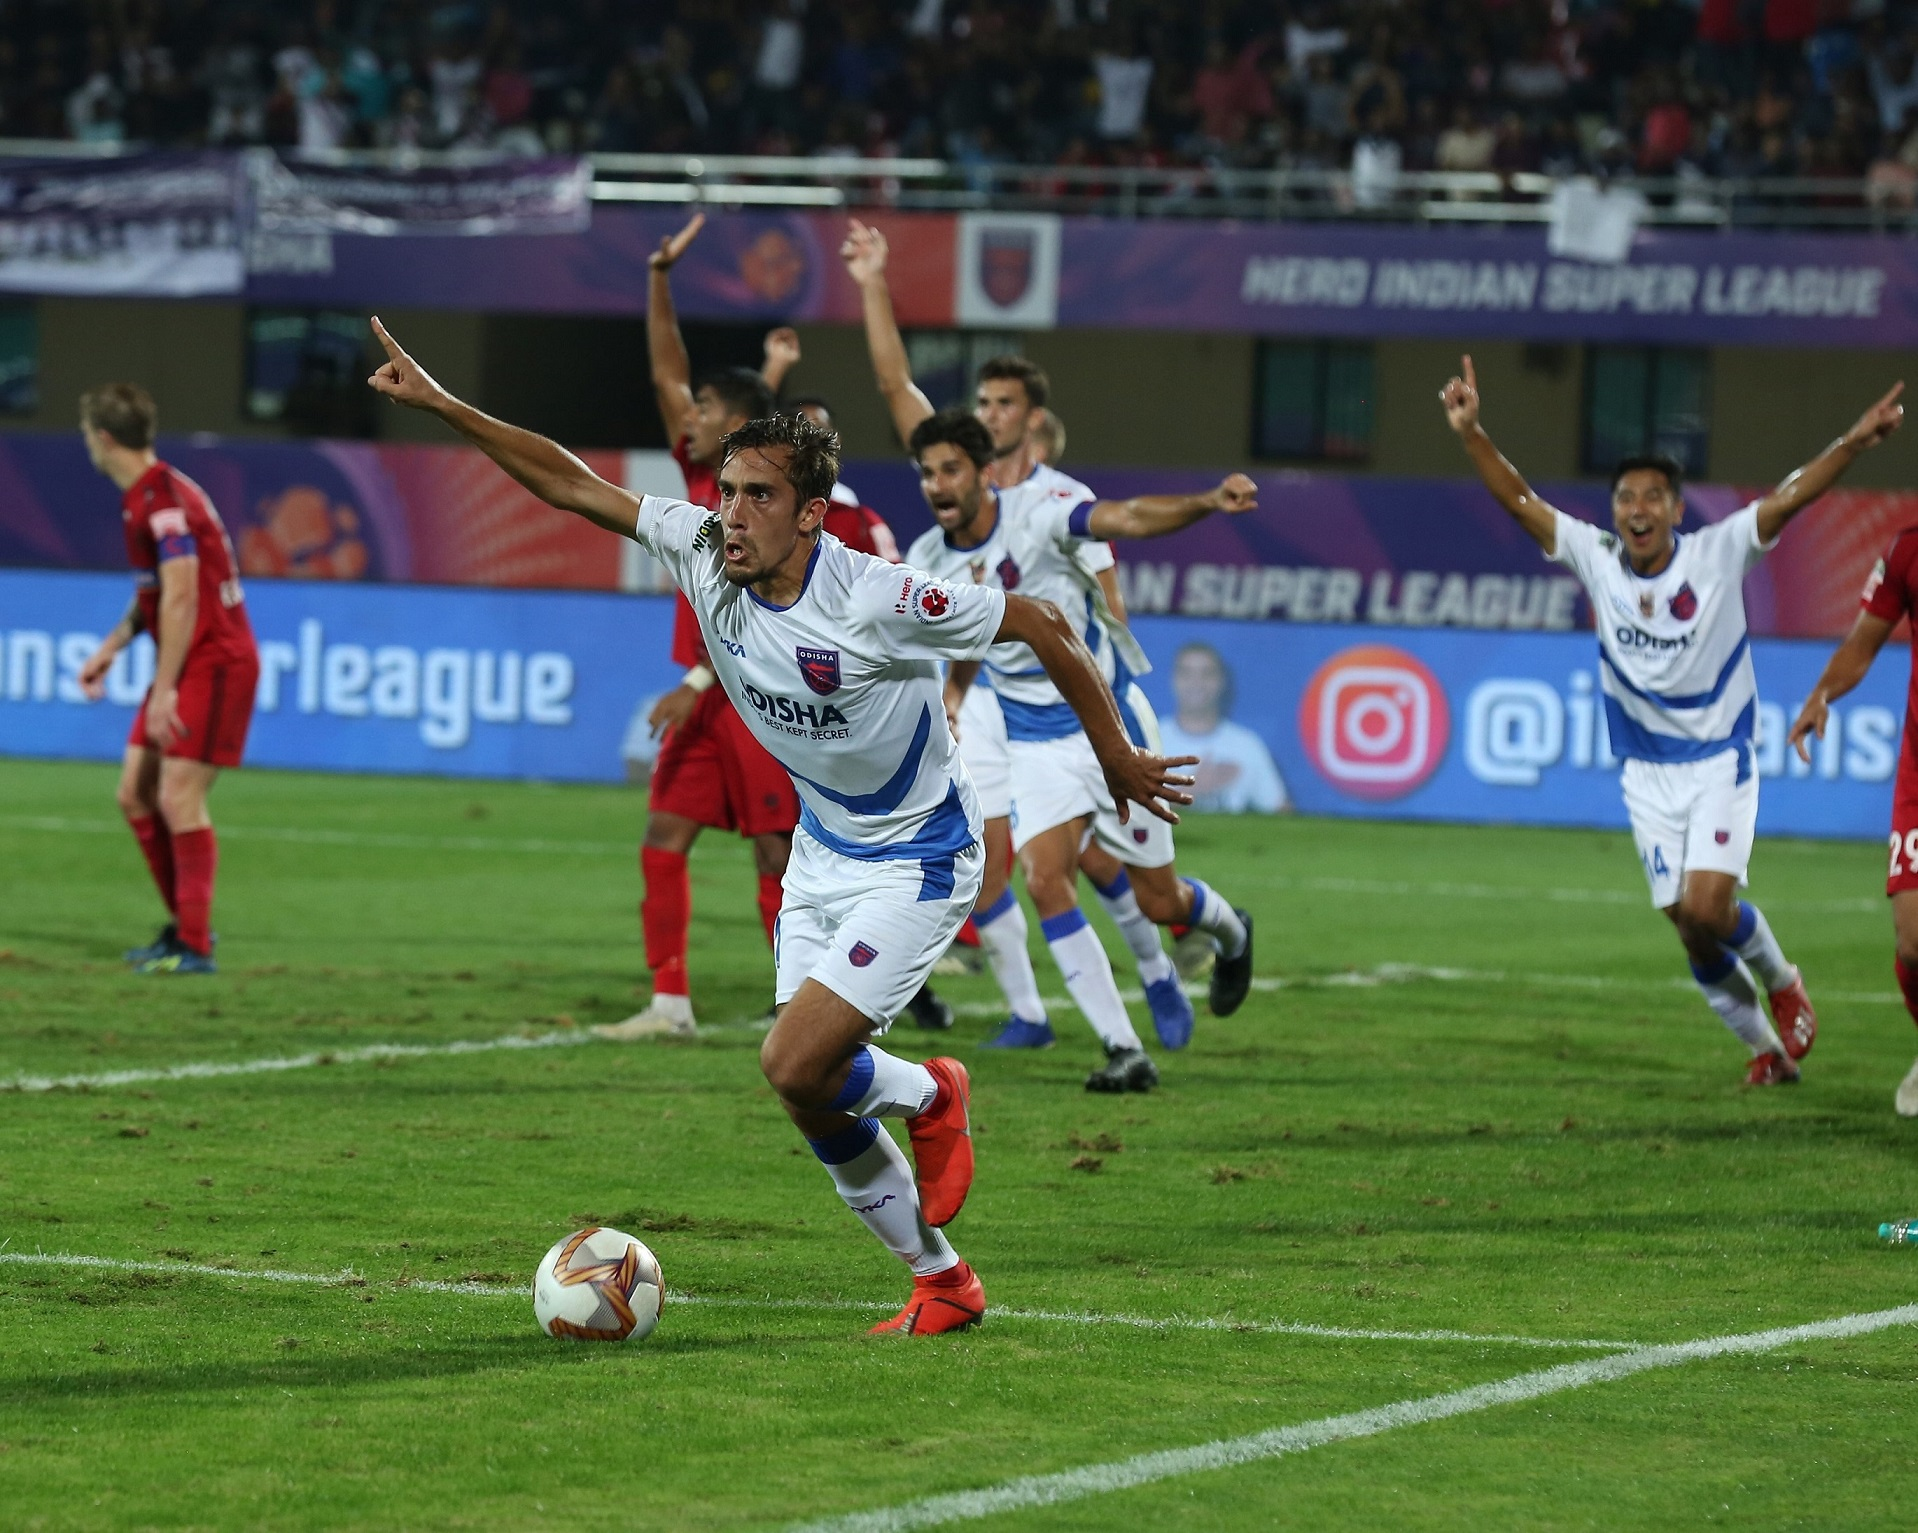 Martin Perez scored in the 72nd minute to hand all three points to Odisha FC in the Hero ISL on Friday.